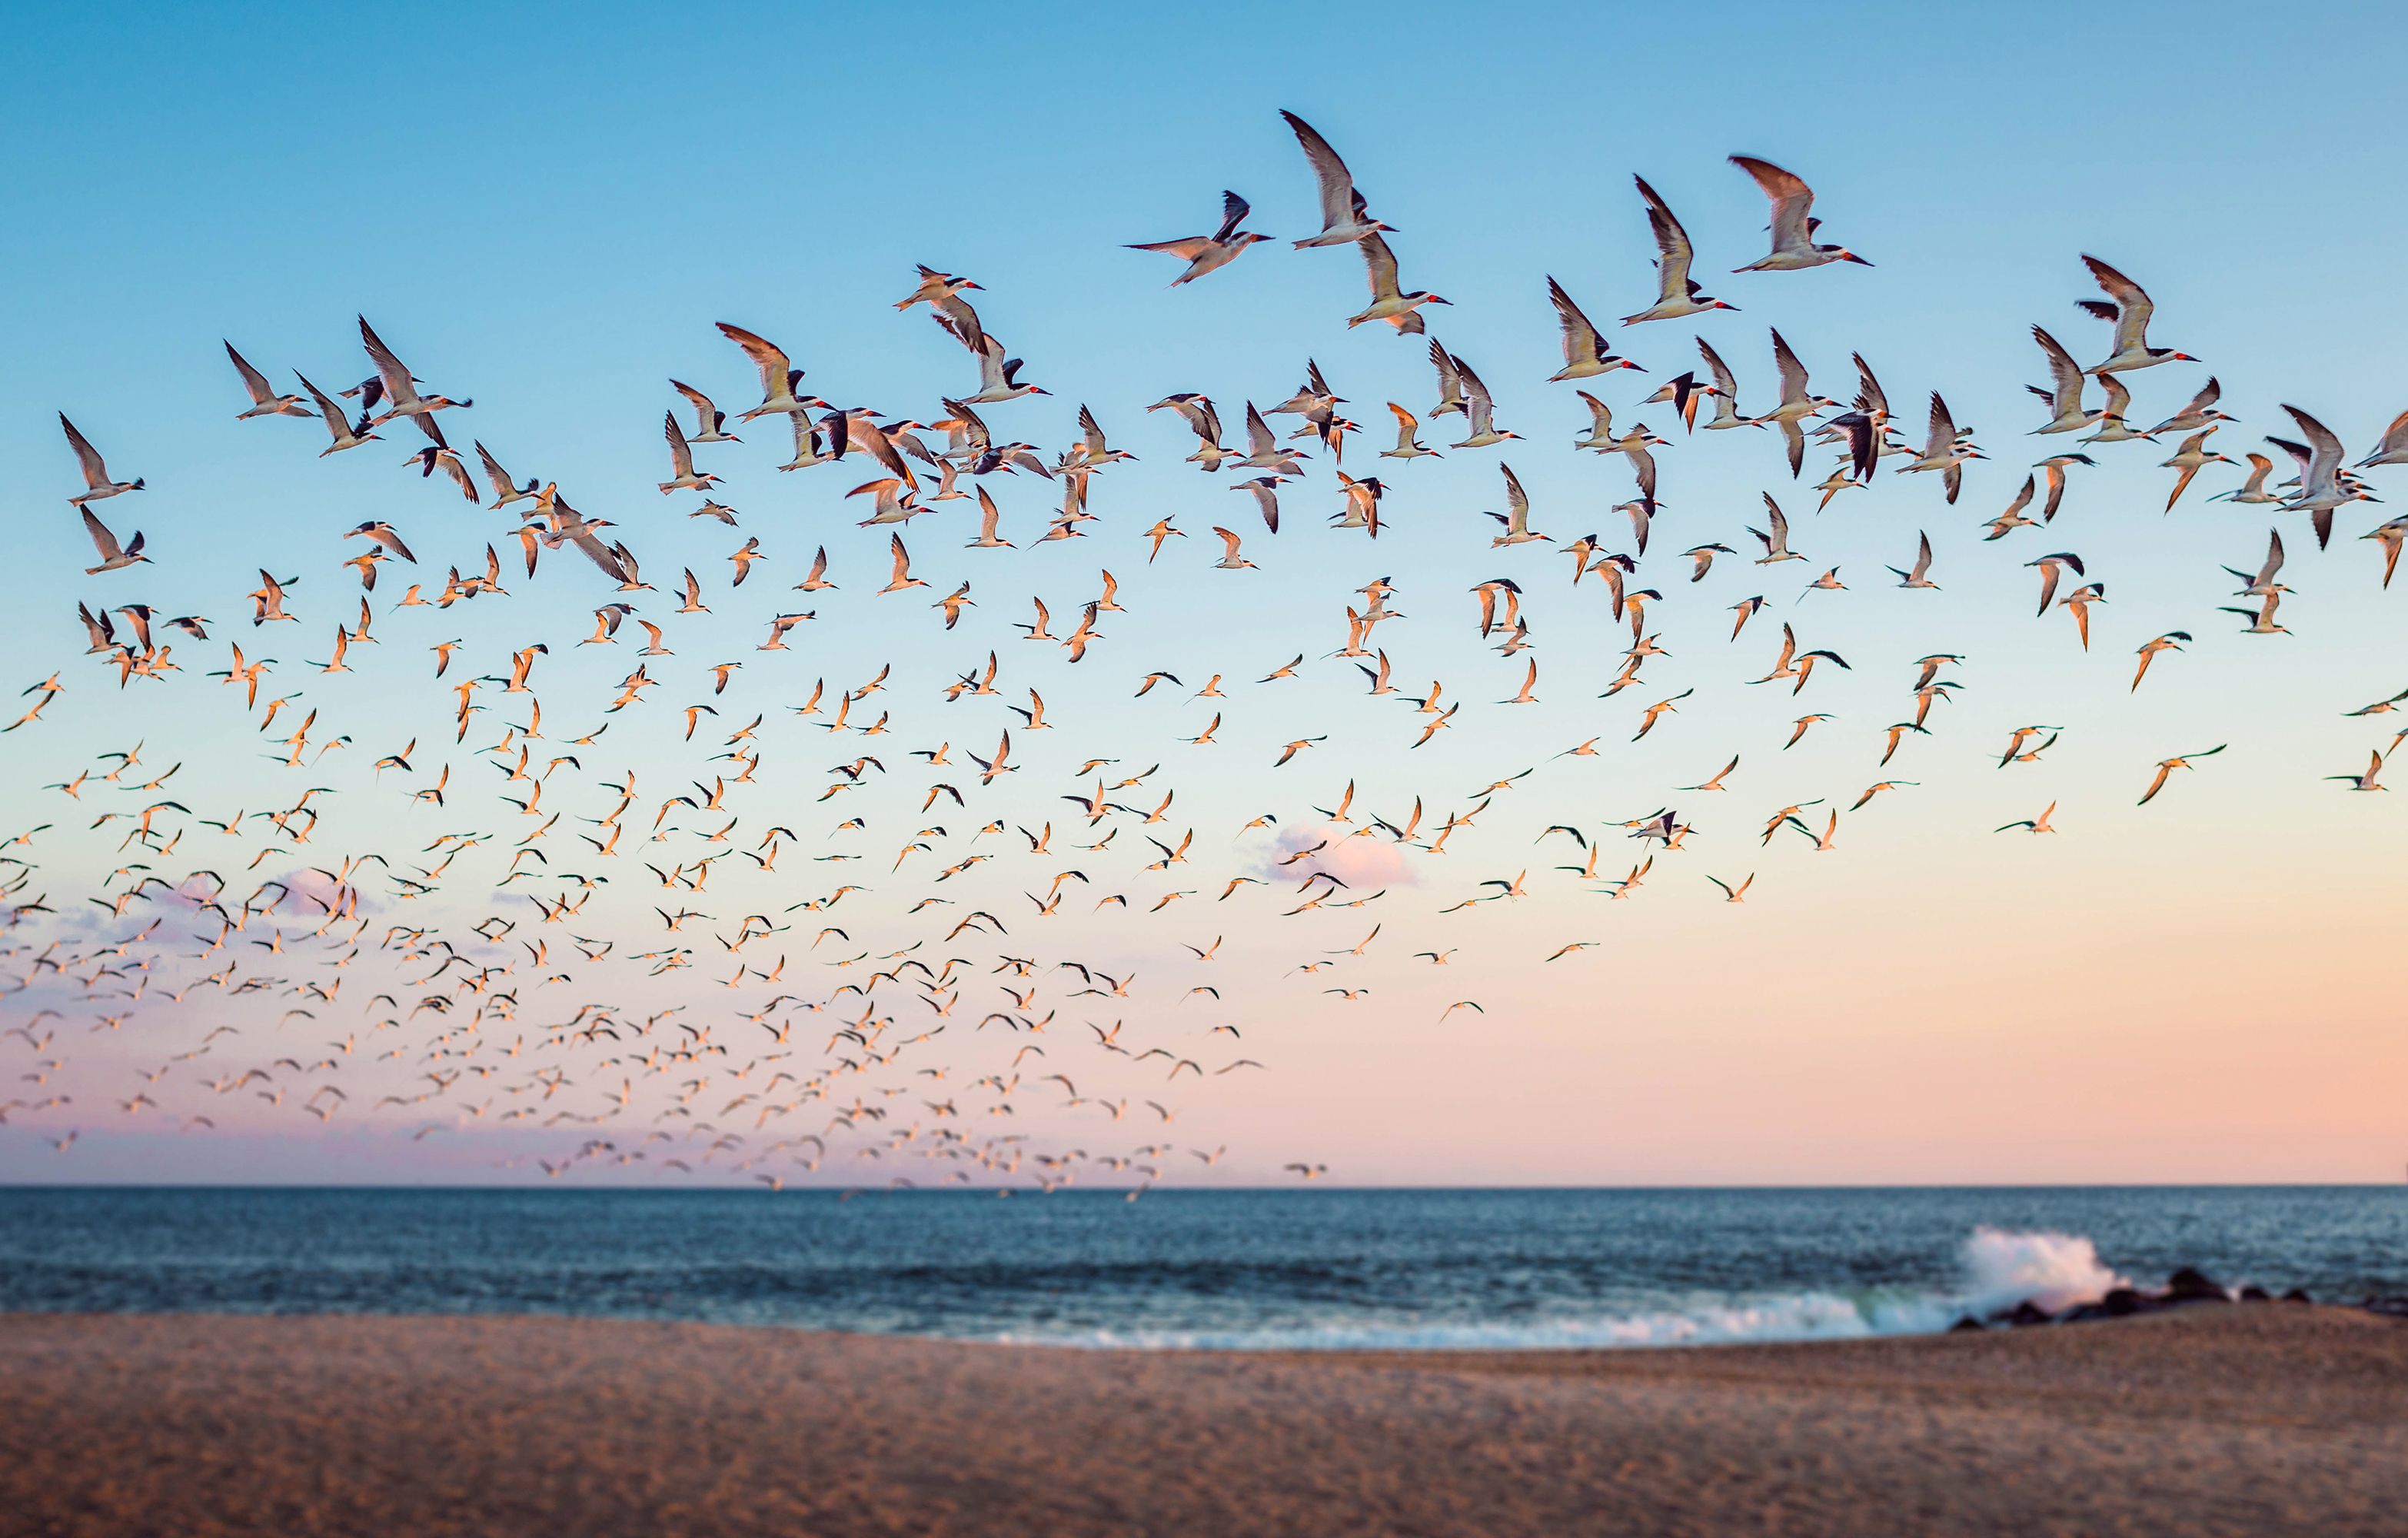 The Best Places for Birdwatching in the United States